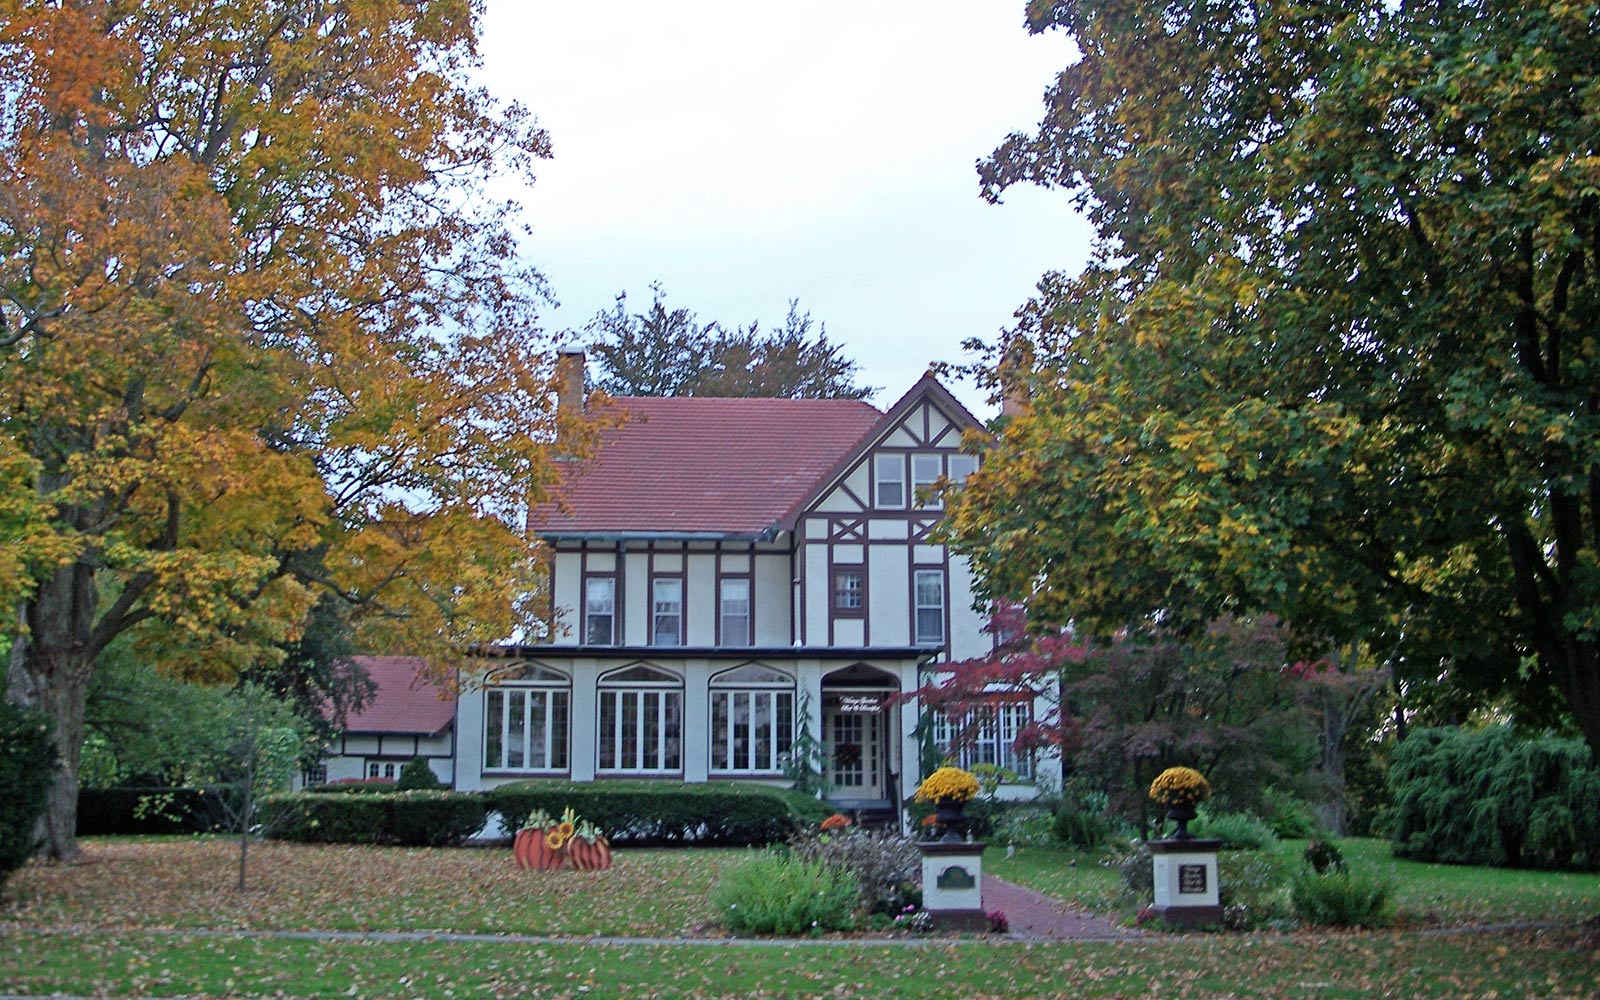 Vintage Gardens Bed & Breakfast: Newark, New York